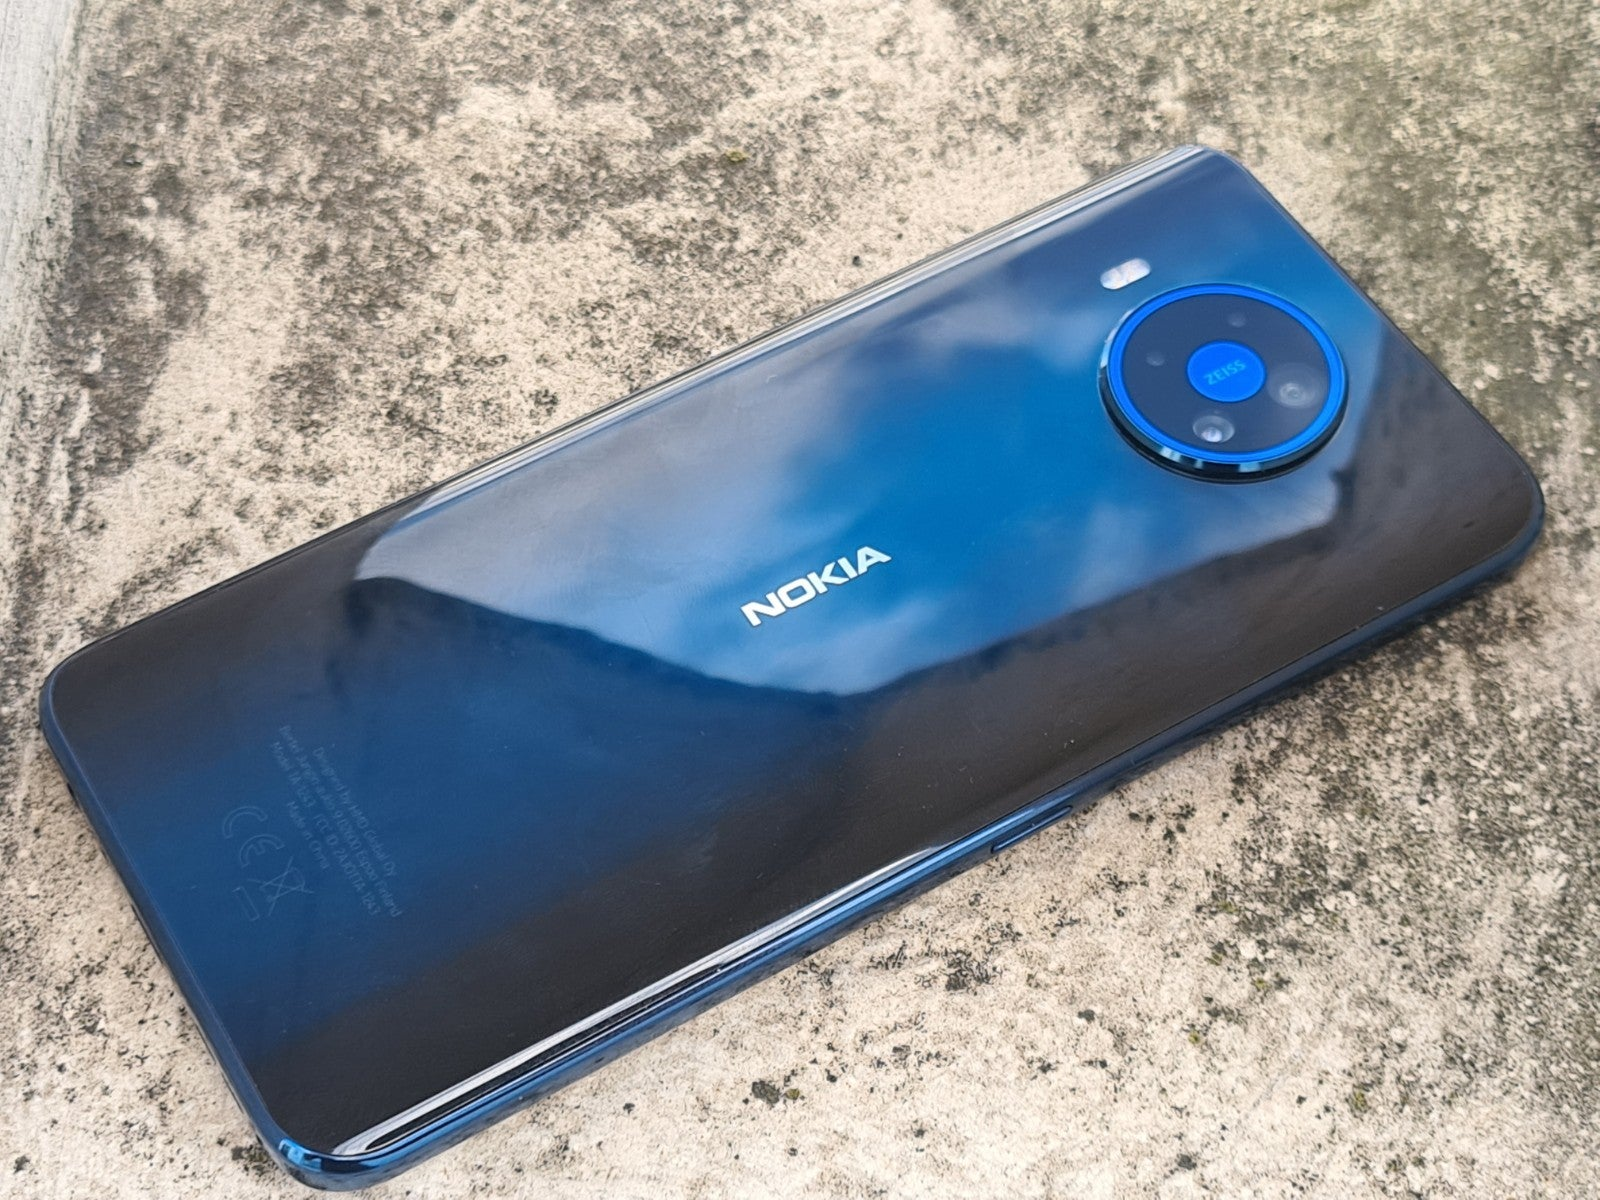 Nokia 8 3 5g Review Trusted Reviews